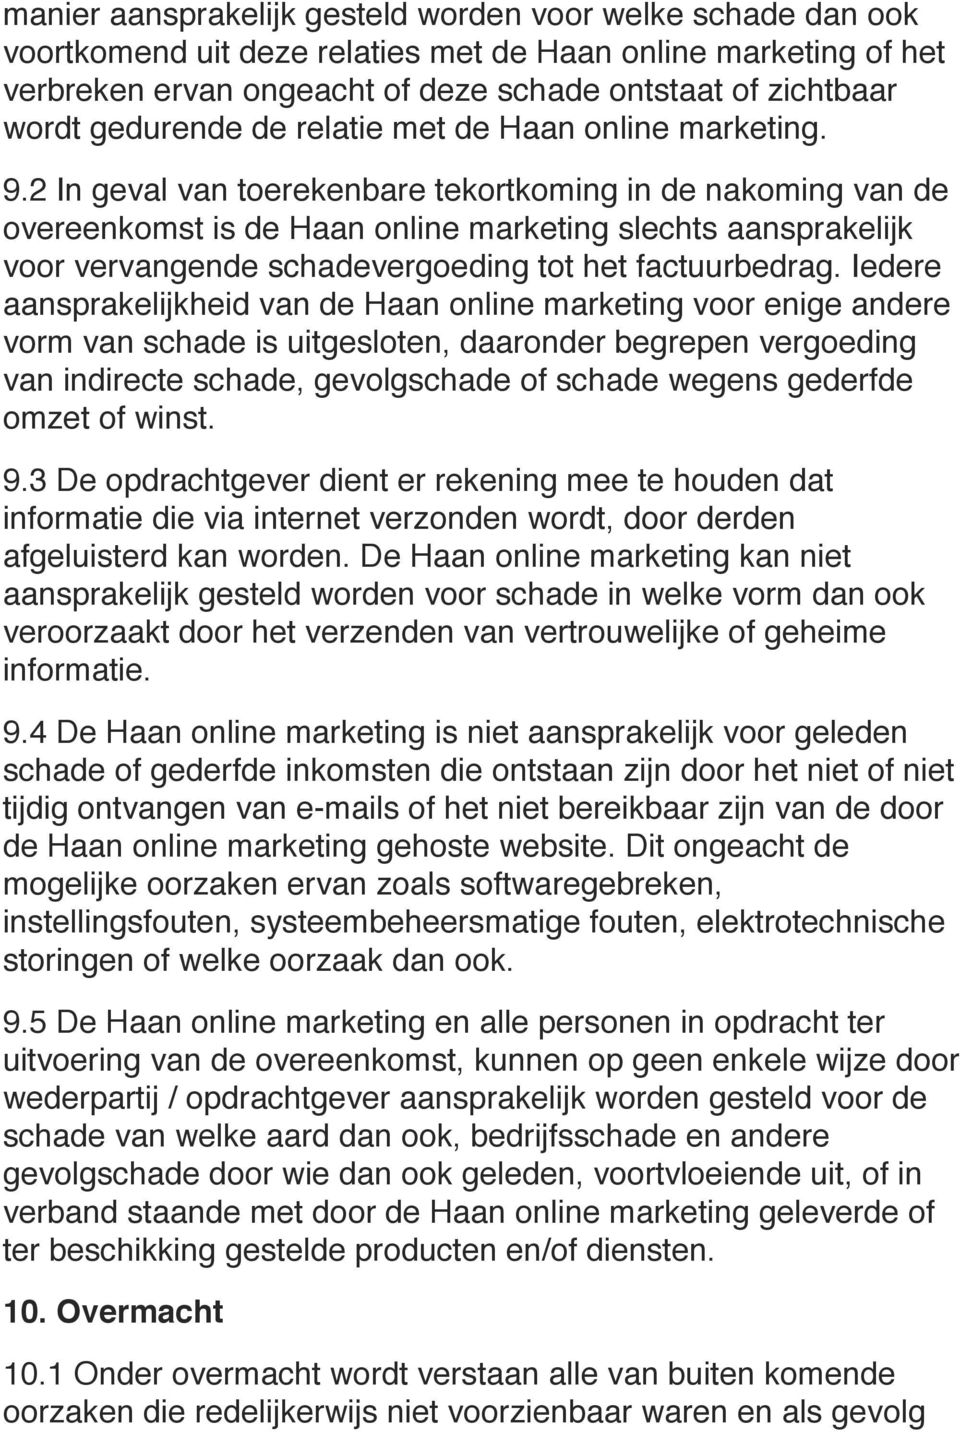 2 In geval van toerekenbare tekortkoming in de nakoming van de overeenkomst is de Haan online marketing slechts aansprakelijk voor vervangende schadevergoeding tot het factuurbedrag.